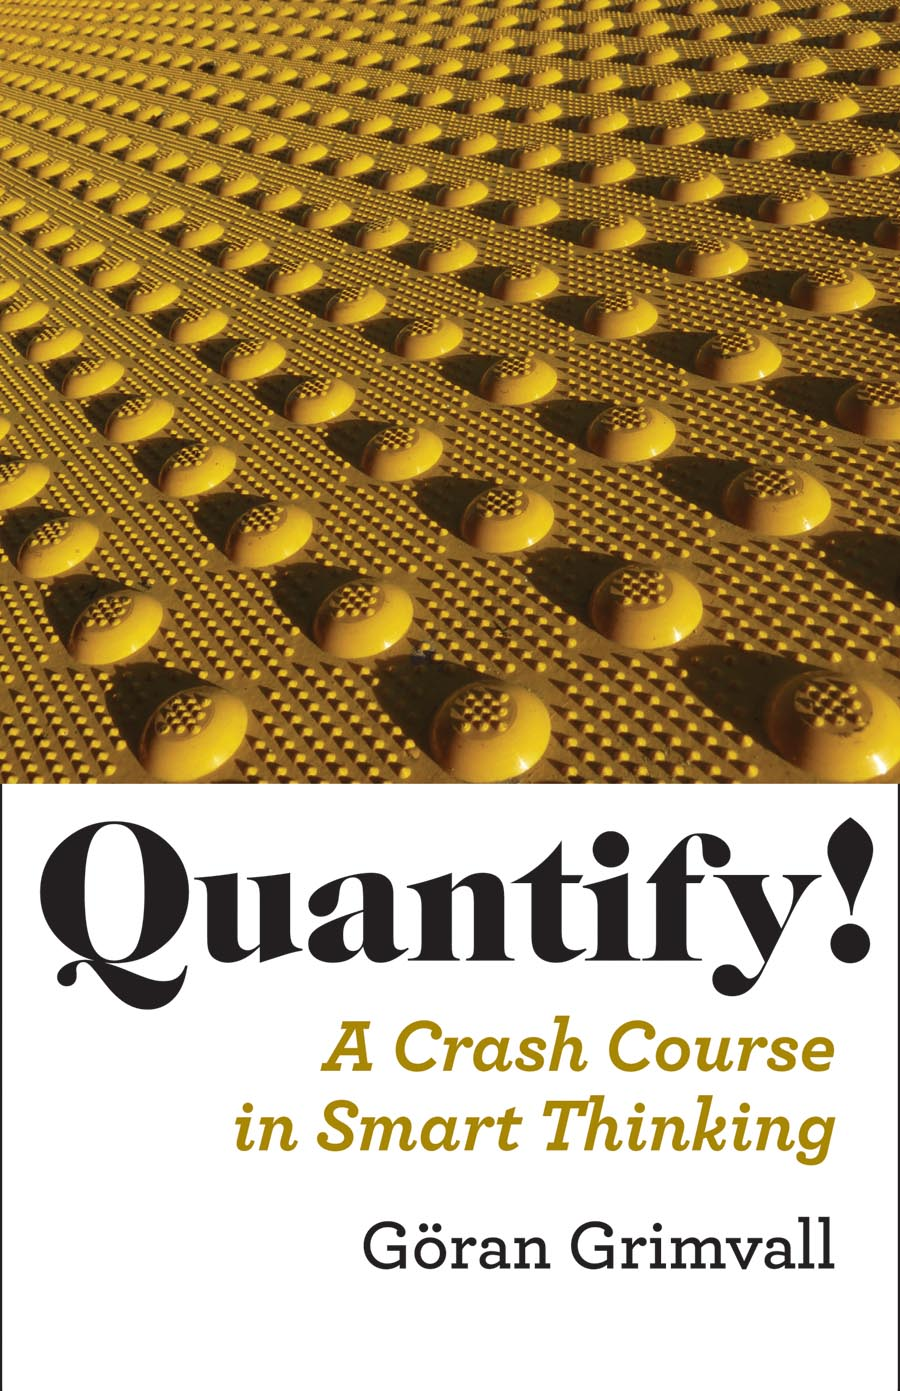 Quantify! – A Crash Course in Smart Thinking course enrollment decisions